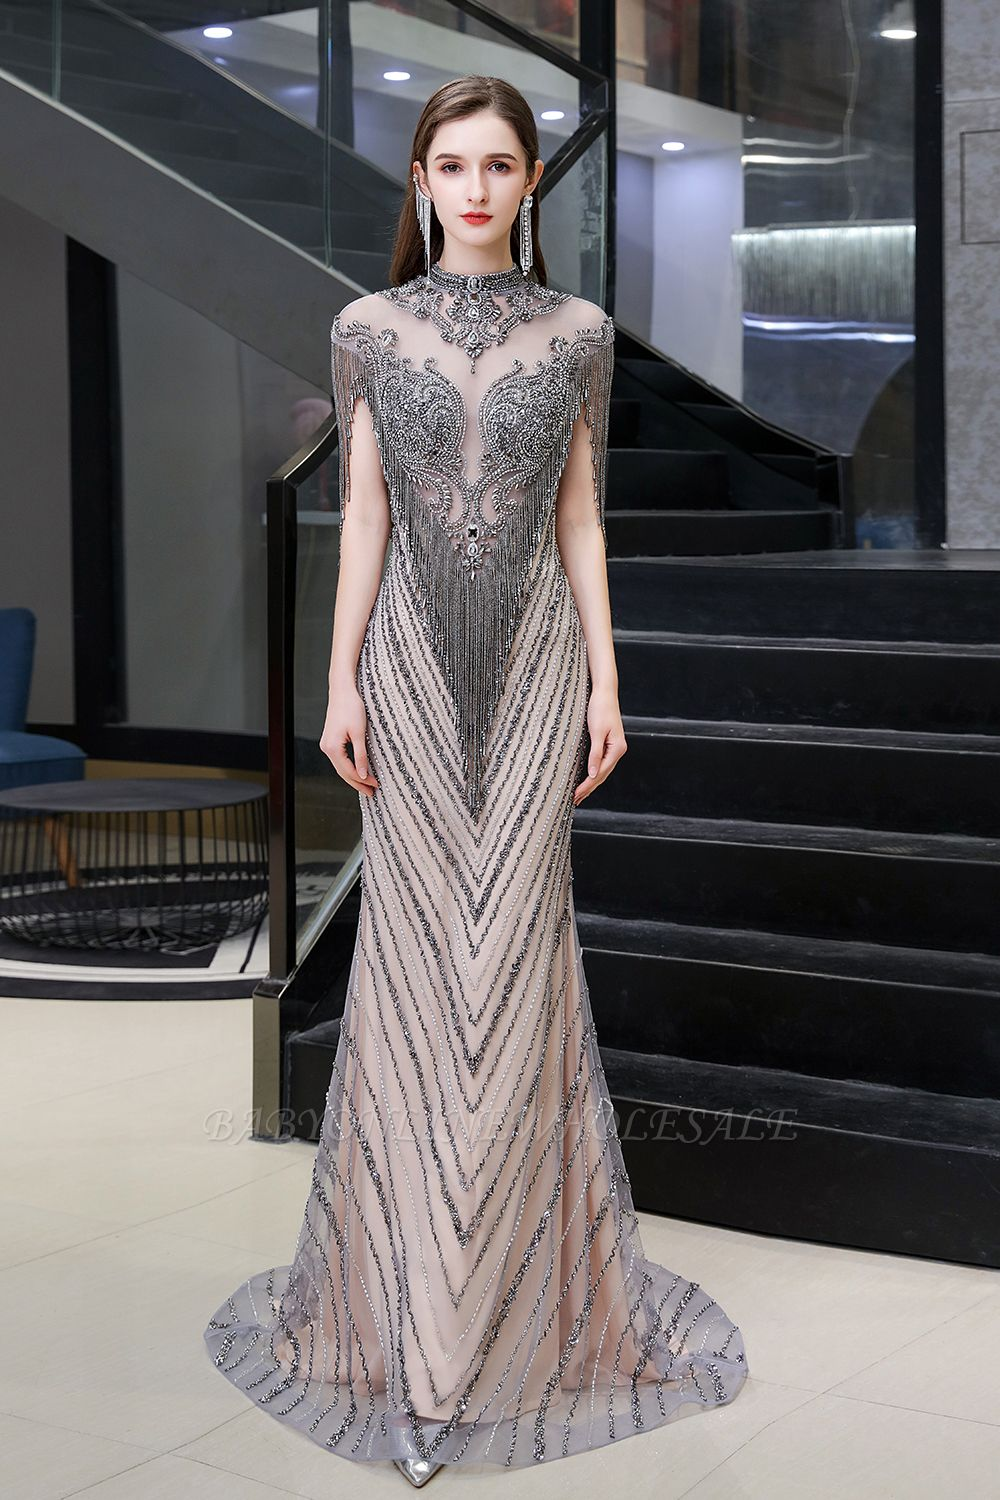 Cap sleeves High neck Sparkle Beads Long Prom Dresses Online